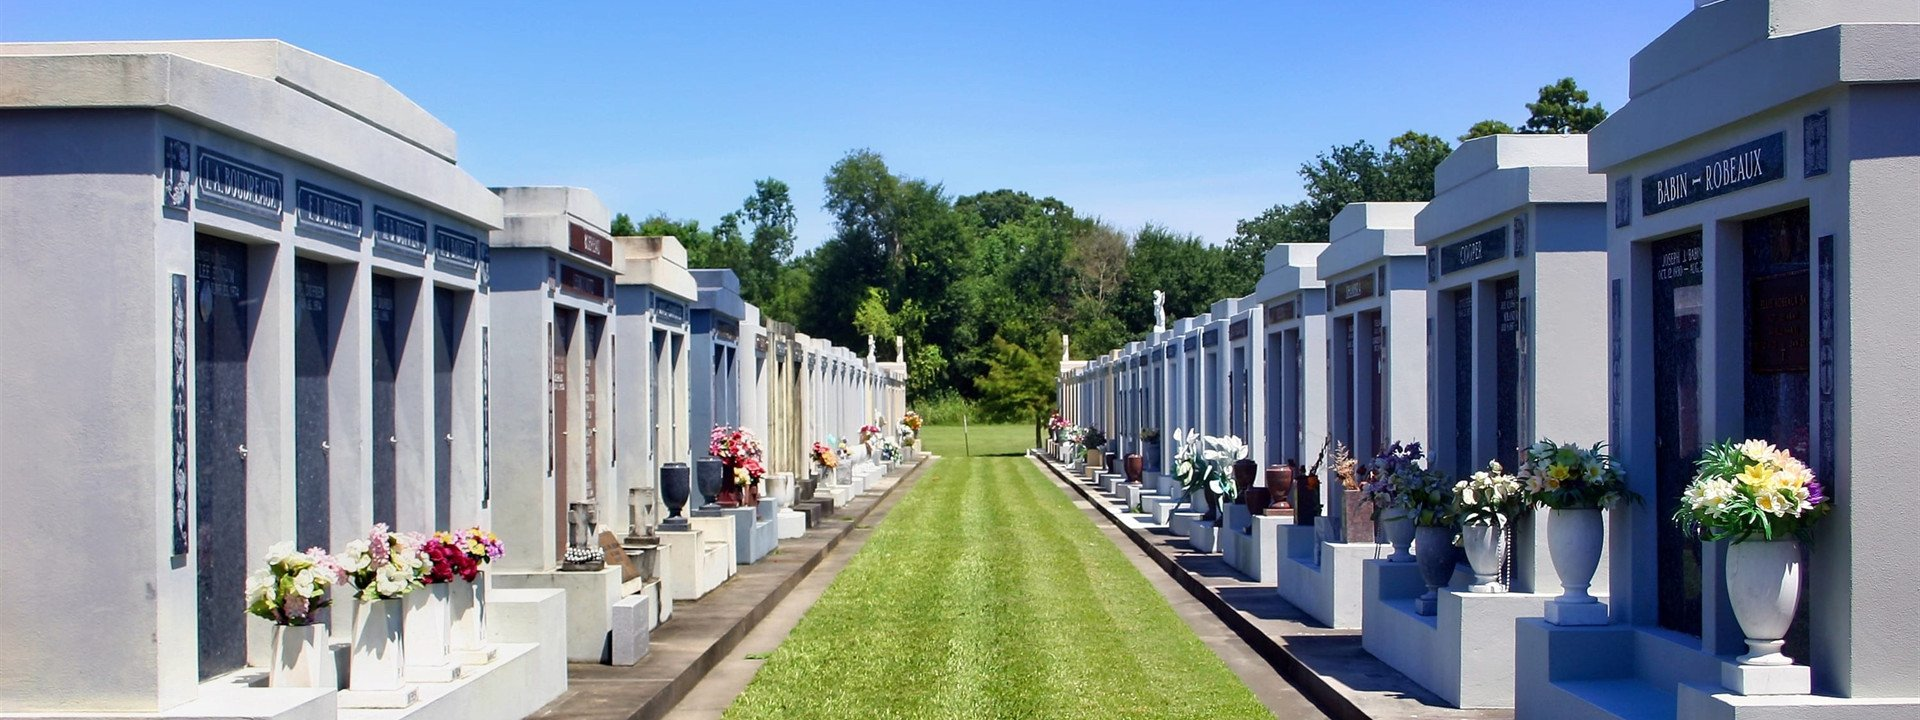 About Us | Restlawn Funeral Home & Memory Gardens